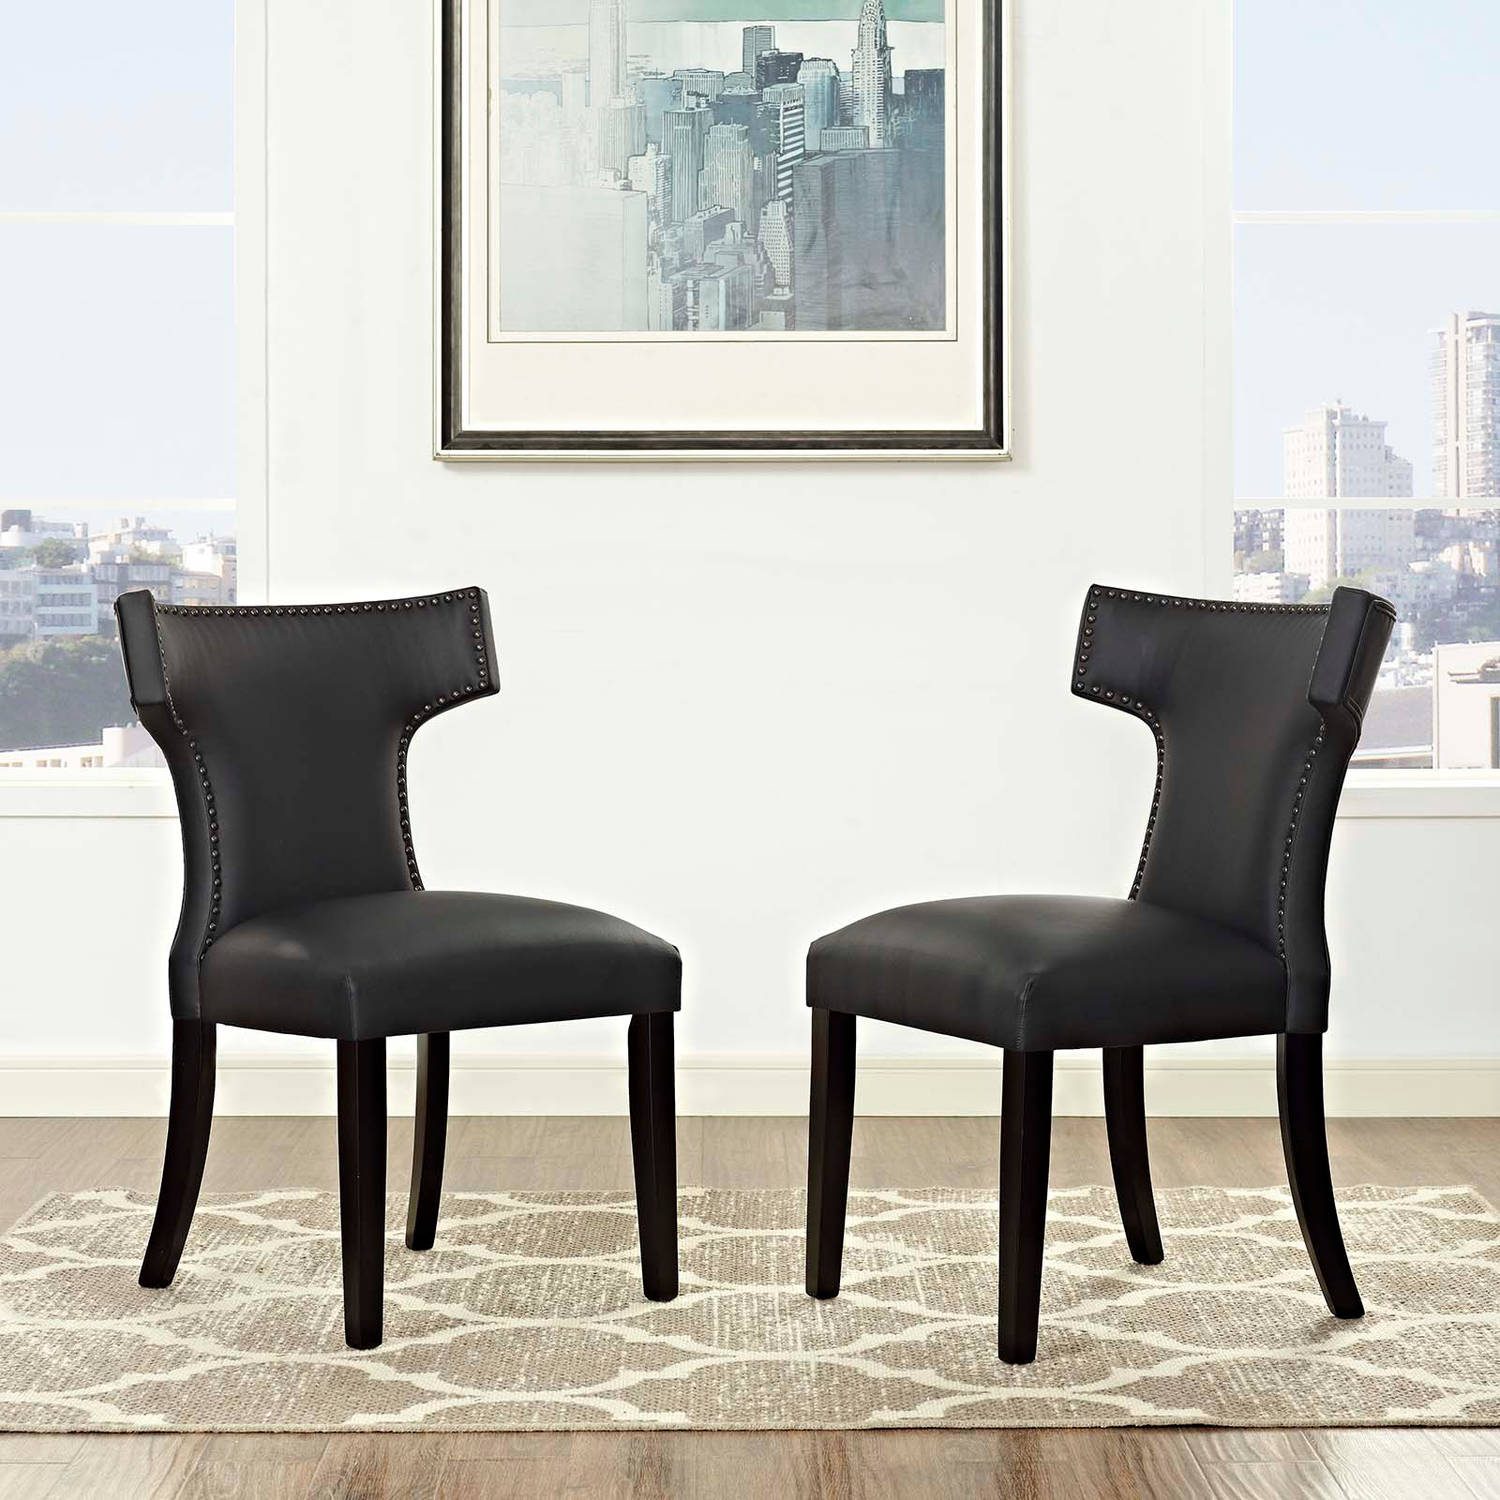 Modway Curve Leatherette Dining Side Chair, Set of 2, Multiple Colors